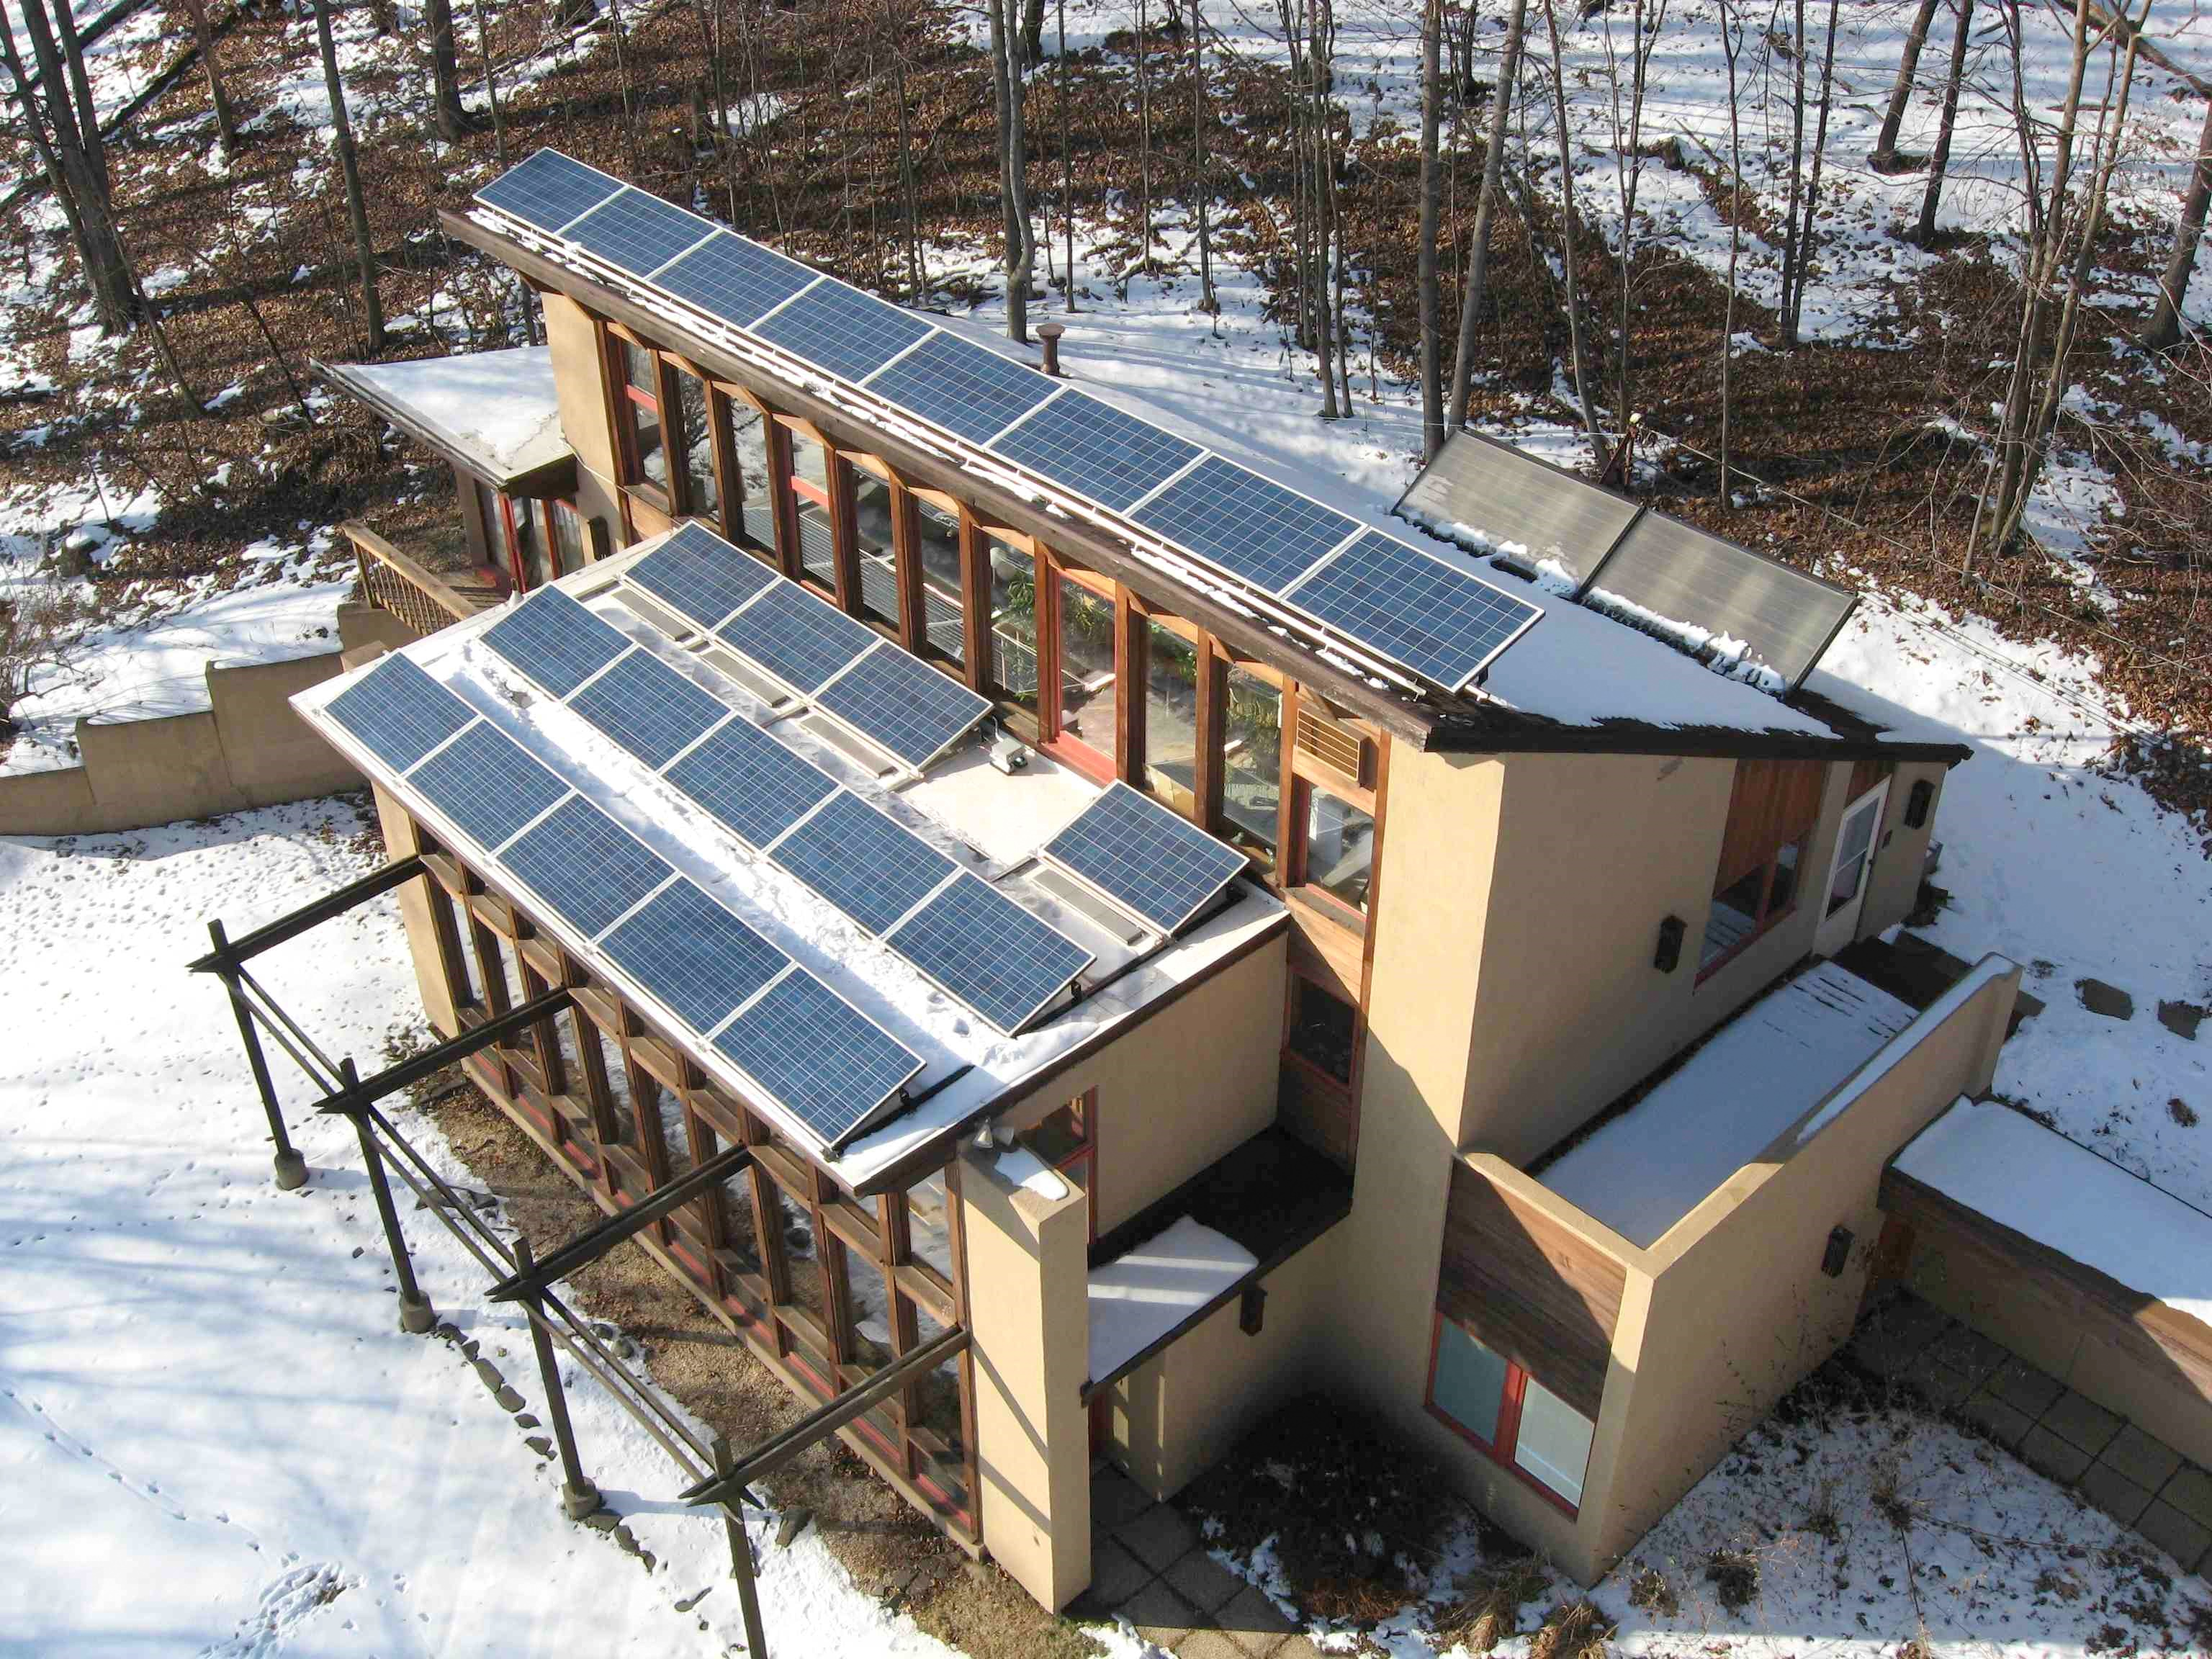 We Ve Reduced Our Energy Needs 100 With Solar PV Solar Thermal Passive  Solar Design And